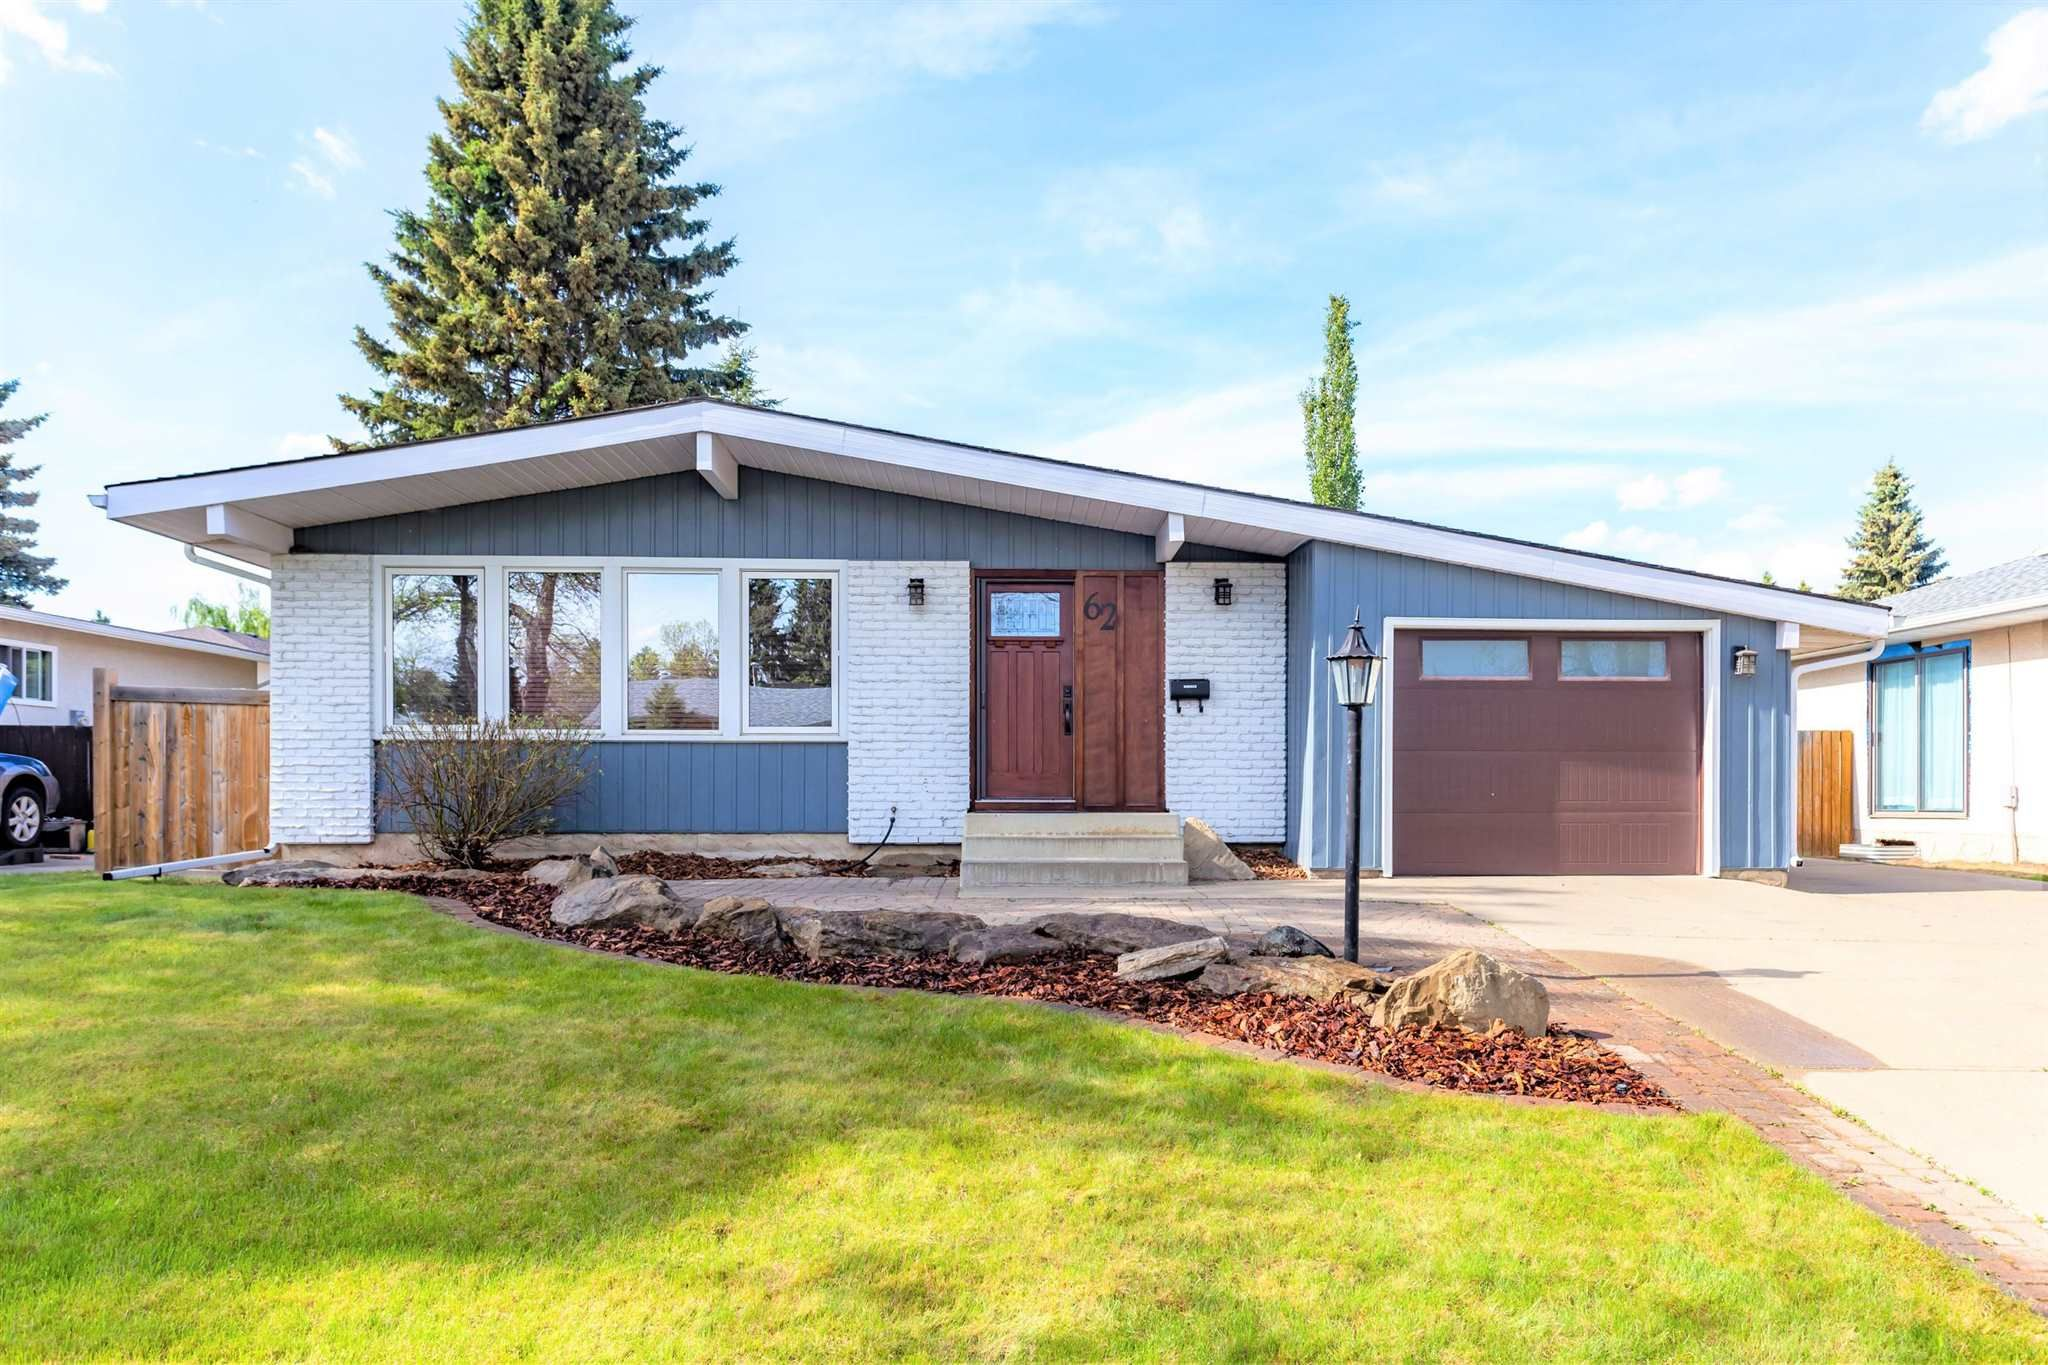 Main Photo: 62 Forest Drive: St. Albert House for sale : MLS®# E4247245